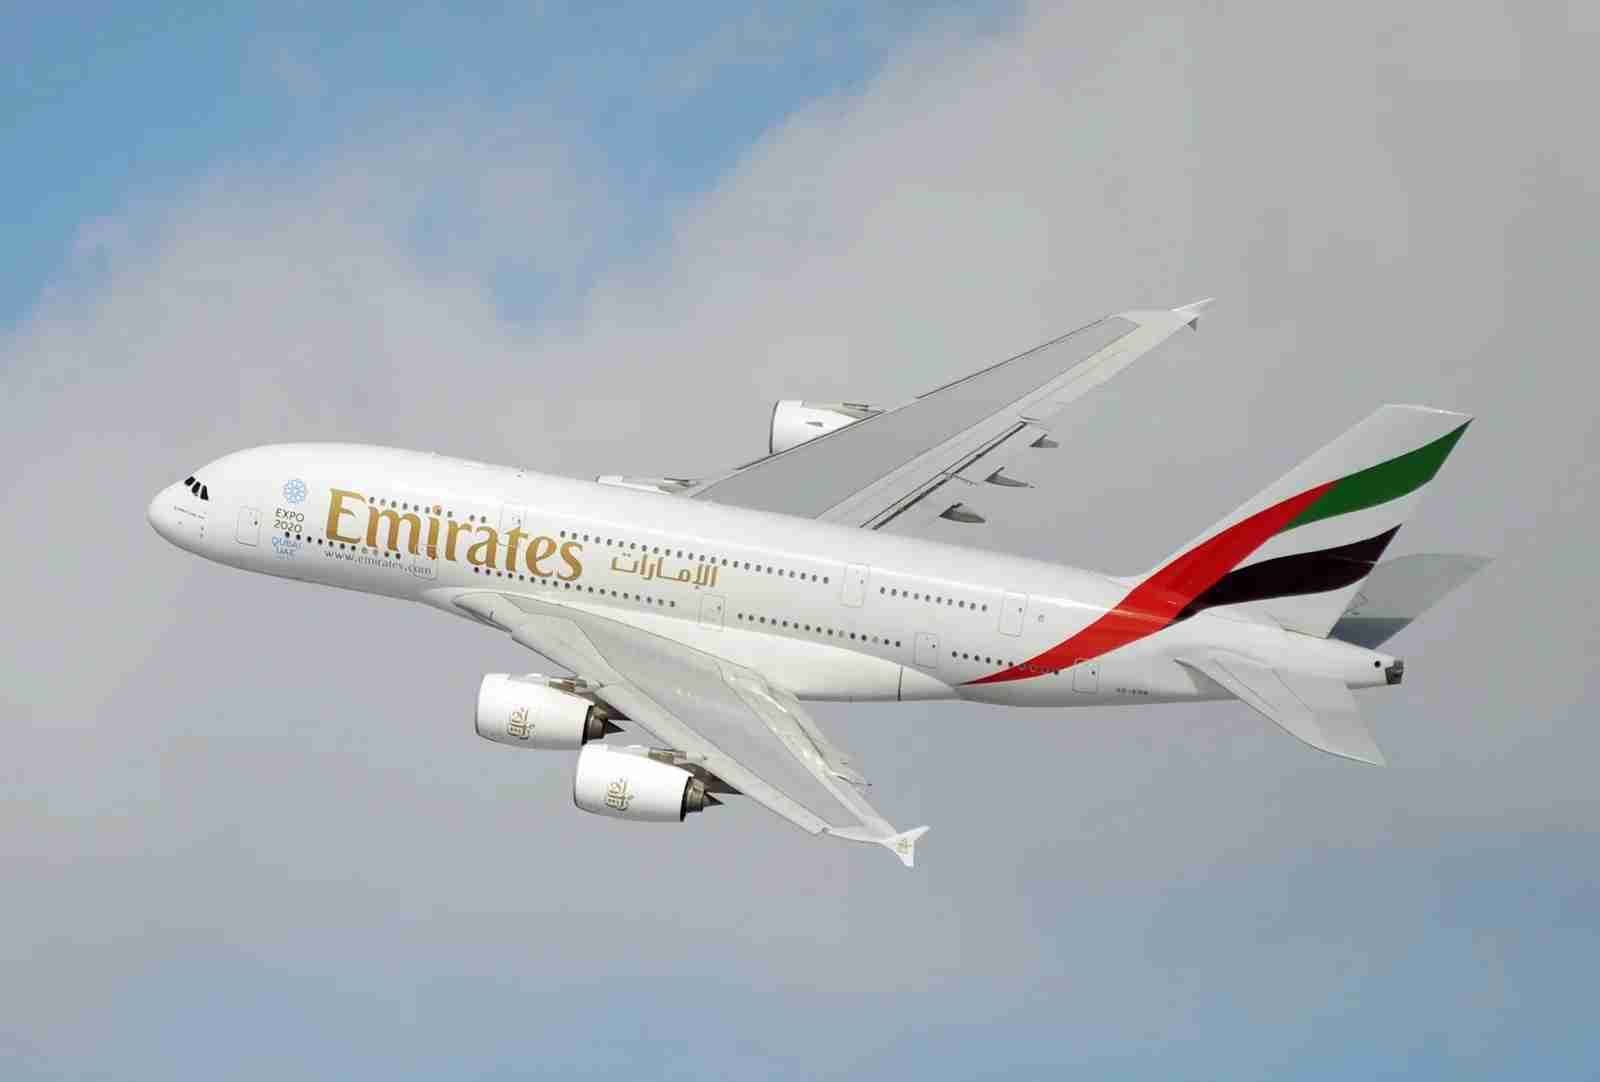 An Emirates Airbus A380 banks on takeoff from New York JFK. (Photo by Alberto Riva/TPG)